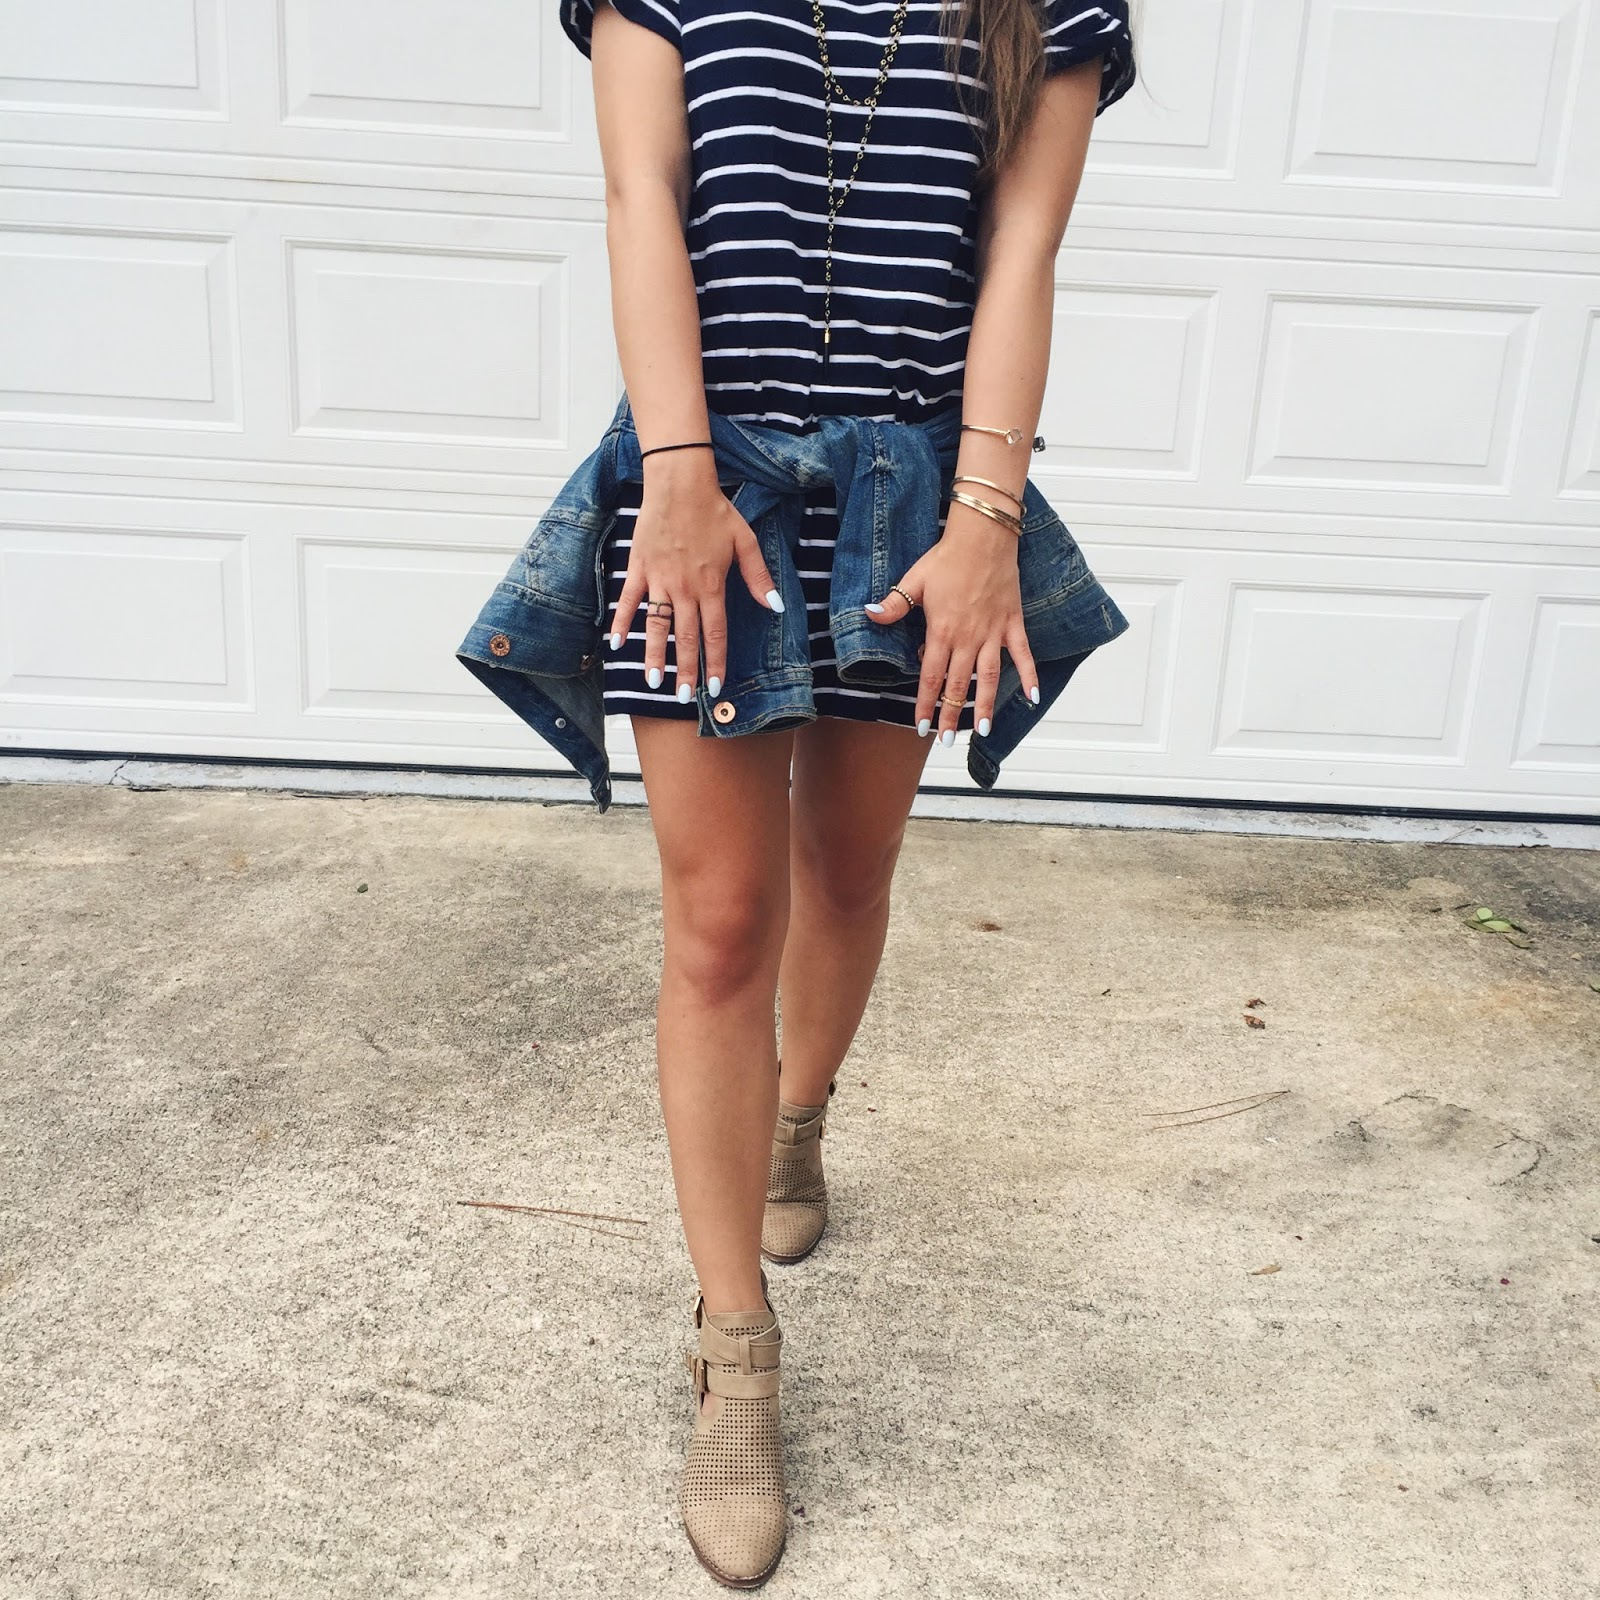 texas fashion blog, austin fashion blog, nyc street style blog, florida fashion blog, off-duty style, street style, personal style, medal striped tee dress, forever 21 ankle booties, h&m denim jacket